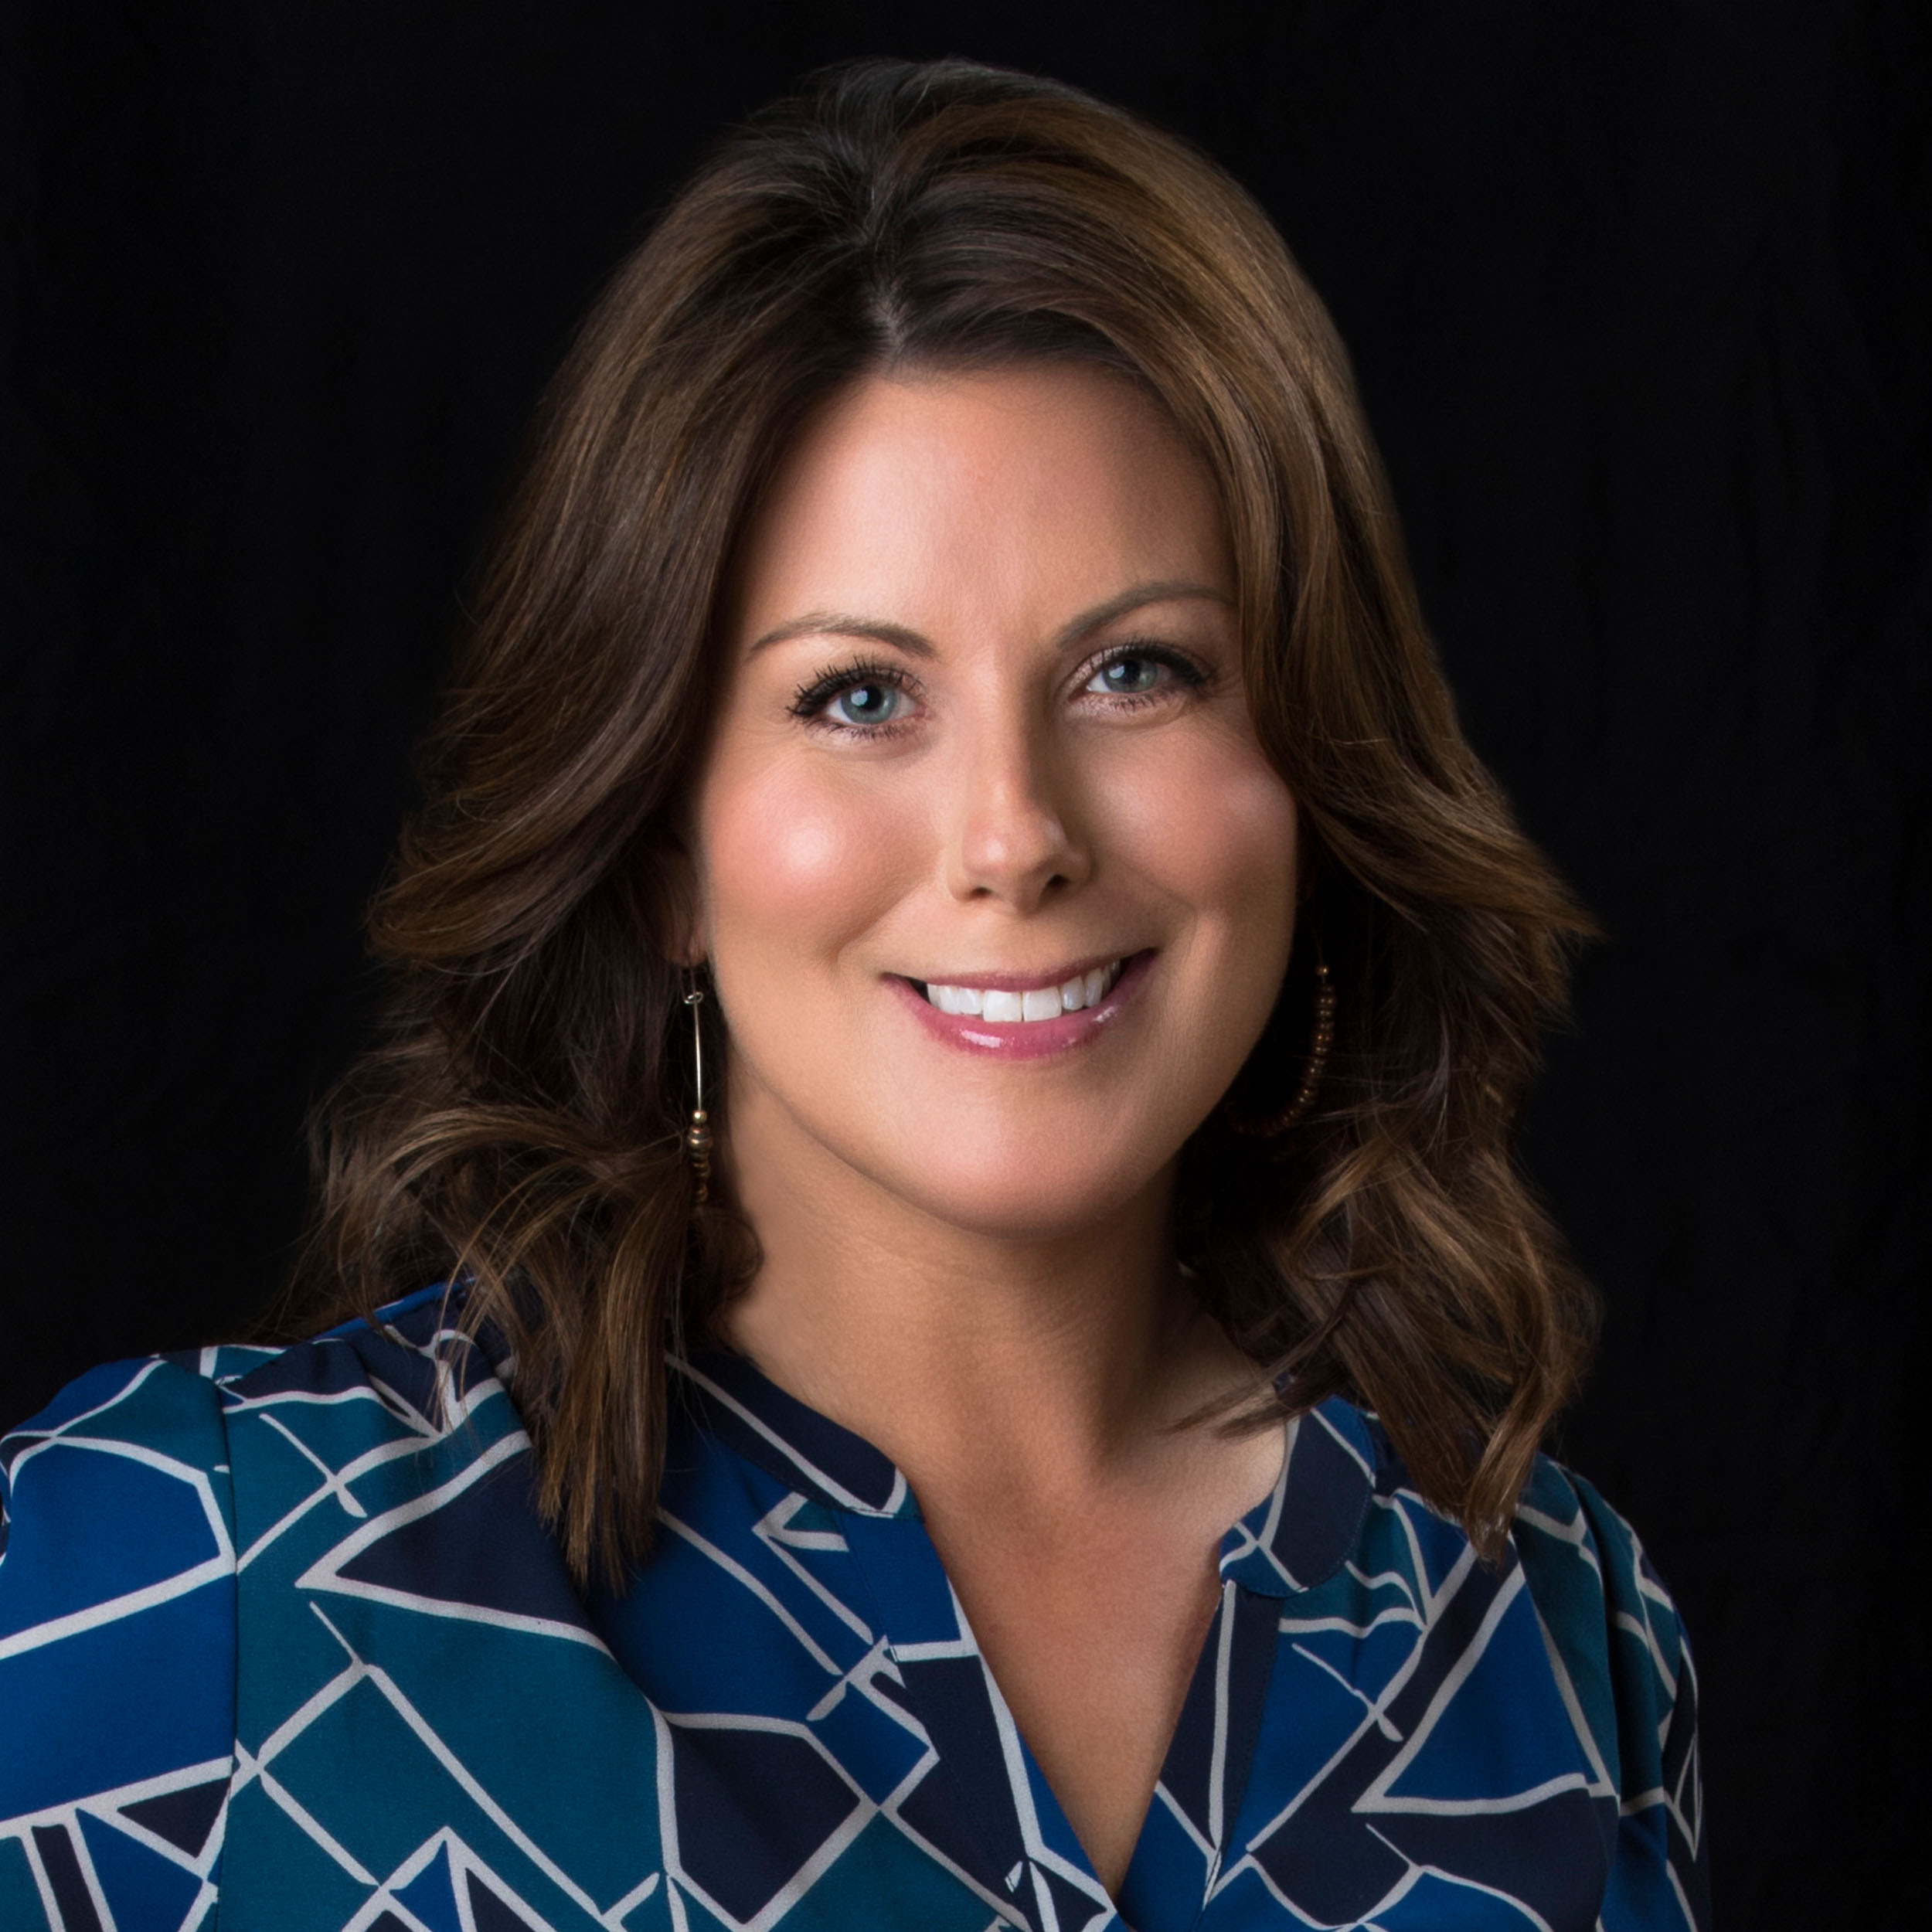 Jill Marinelli - Jill is a personal stylist, public speaker and style correspondent for CBS Providence's The Rhode Show. Focusing on body image, the power of personal style, and social science research, she teaches her audiences and clients how to look great, project confidence, and ultimately change their lives through their appearance.